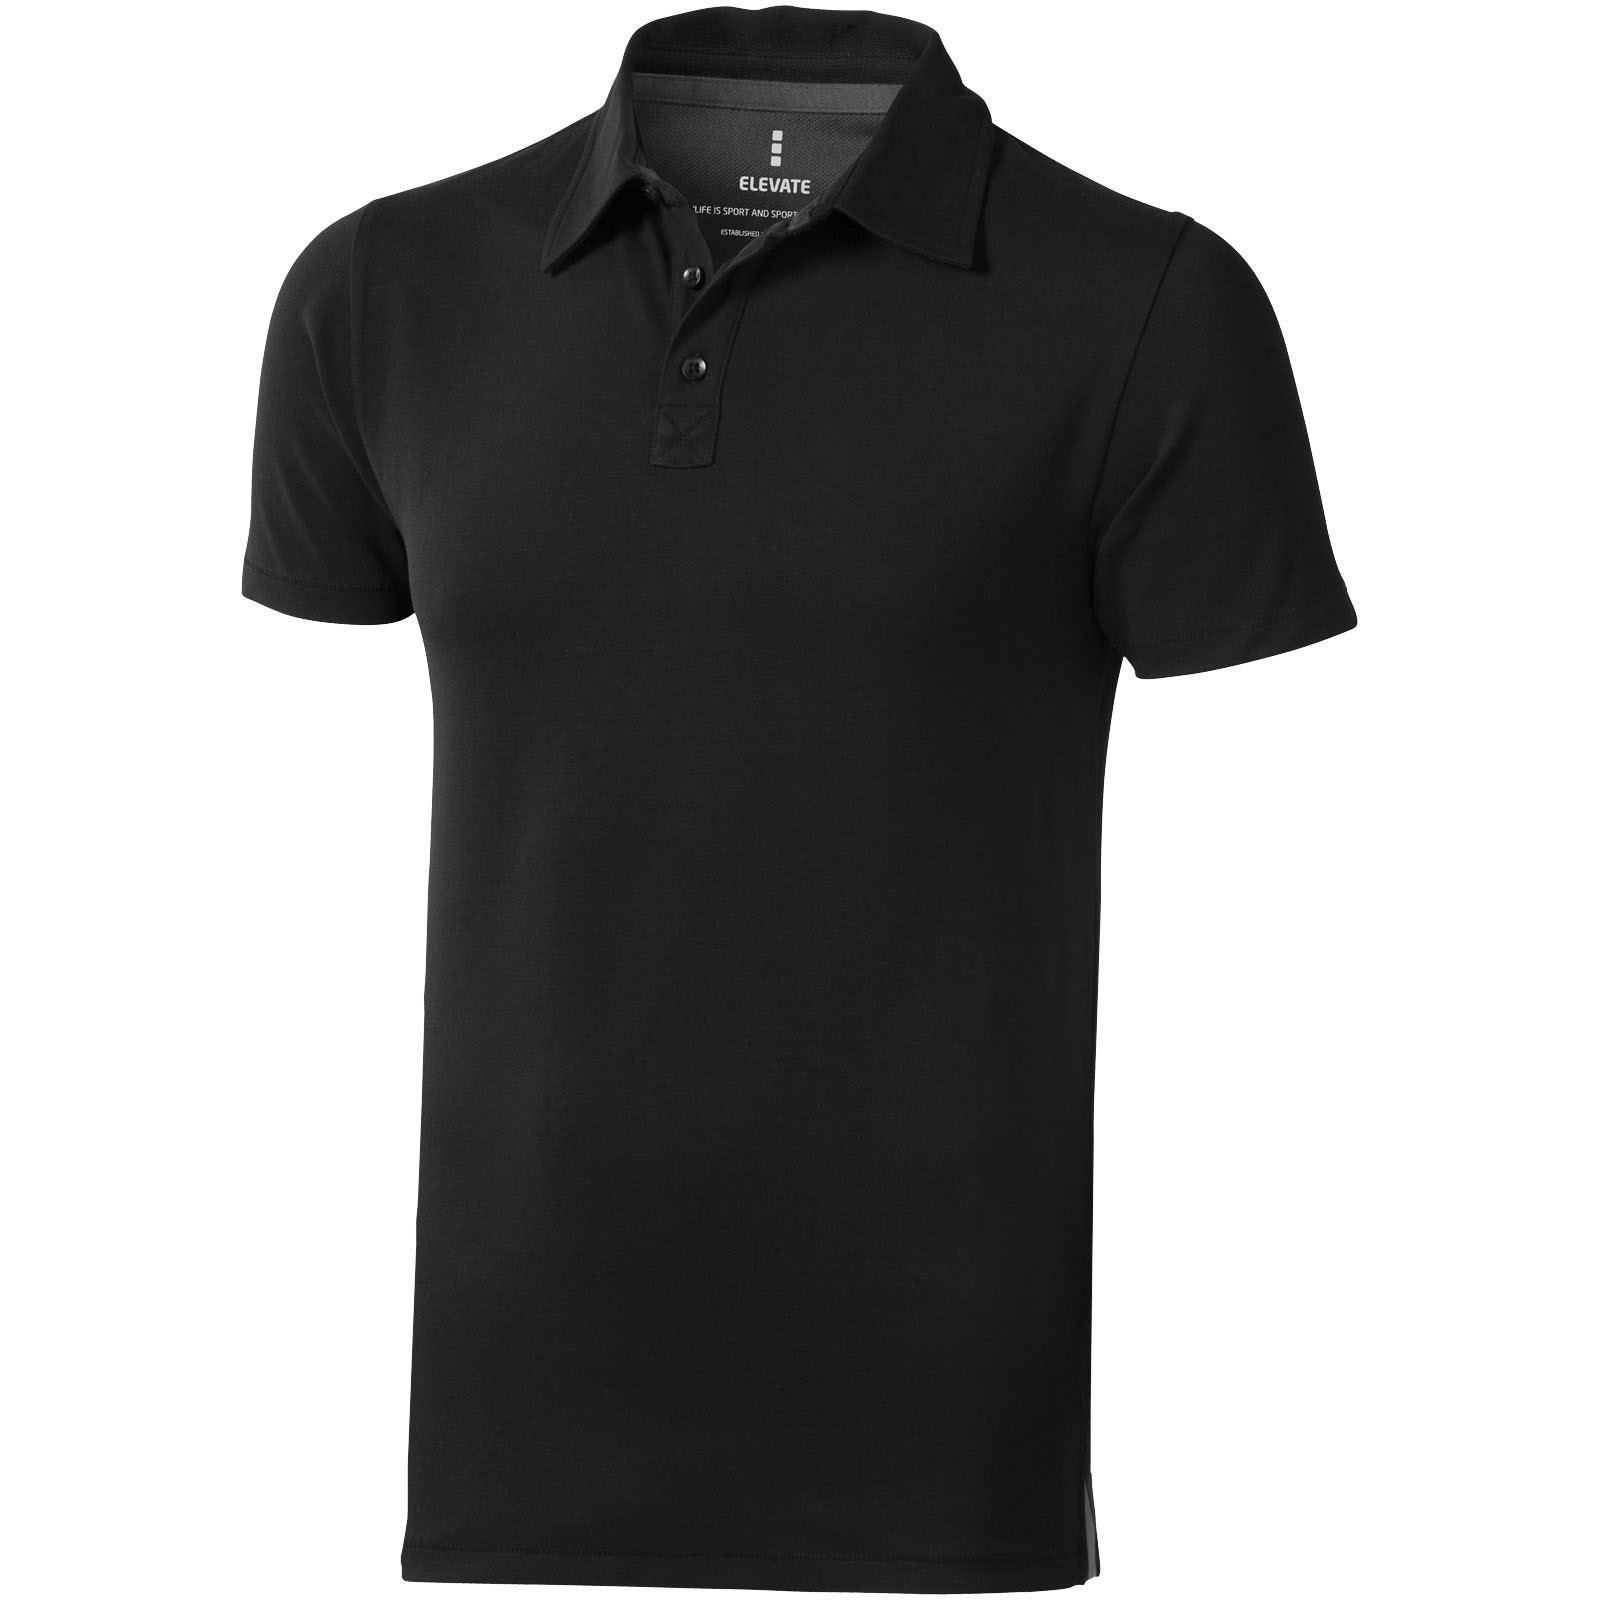 Markham short sleeve men's stretch polo - Solid Black / S